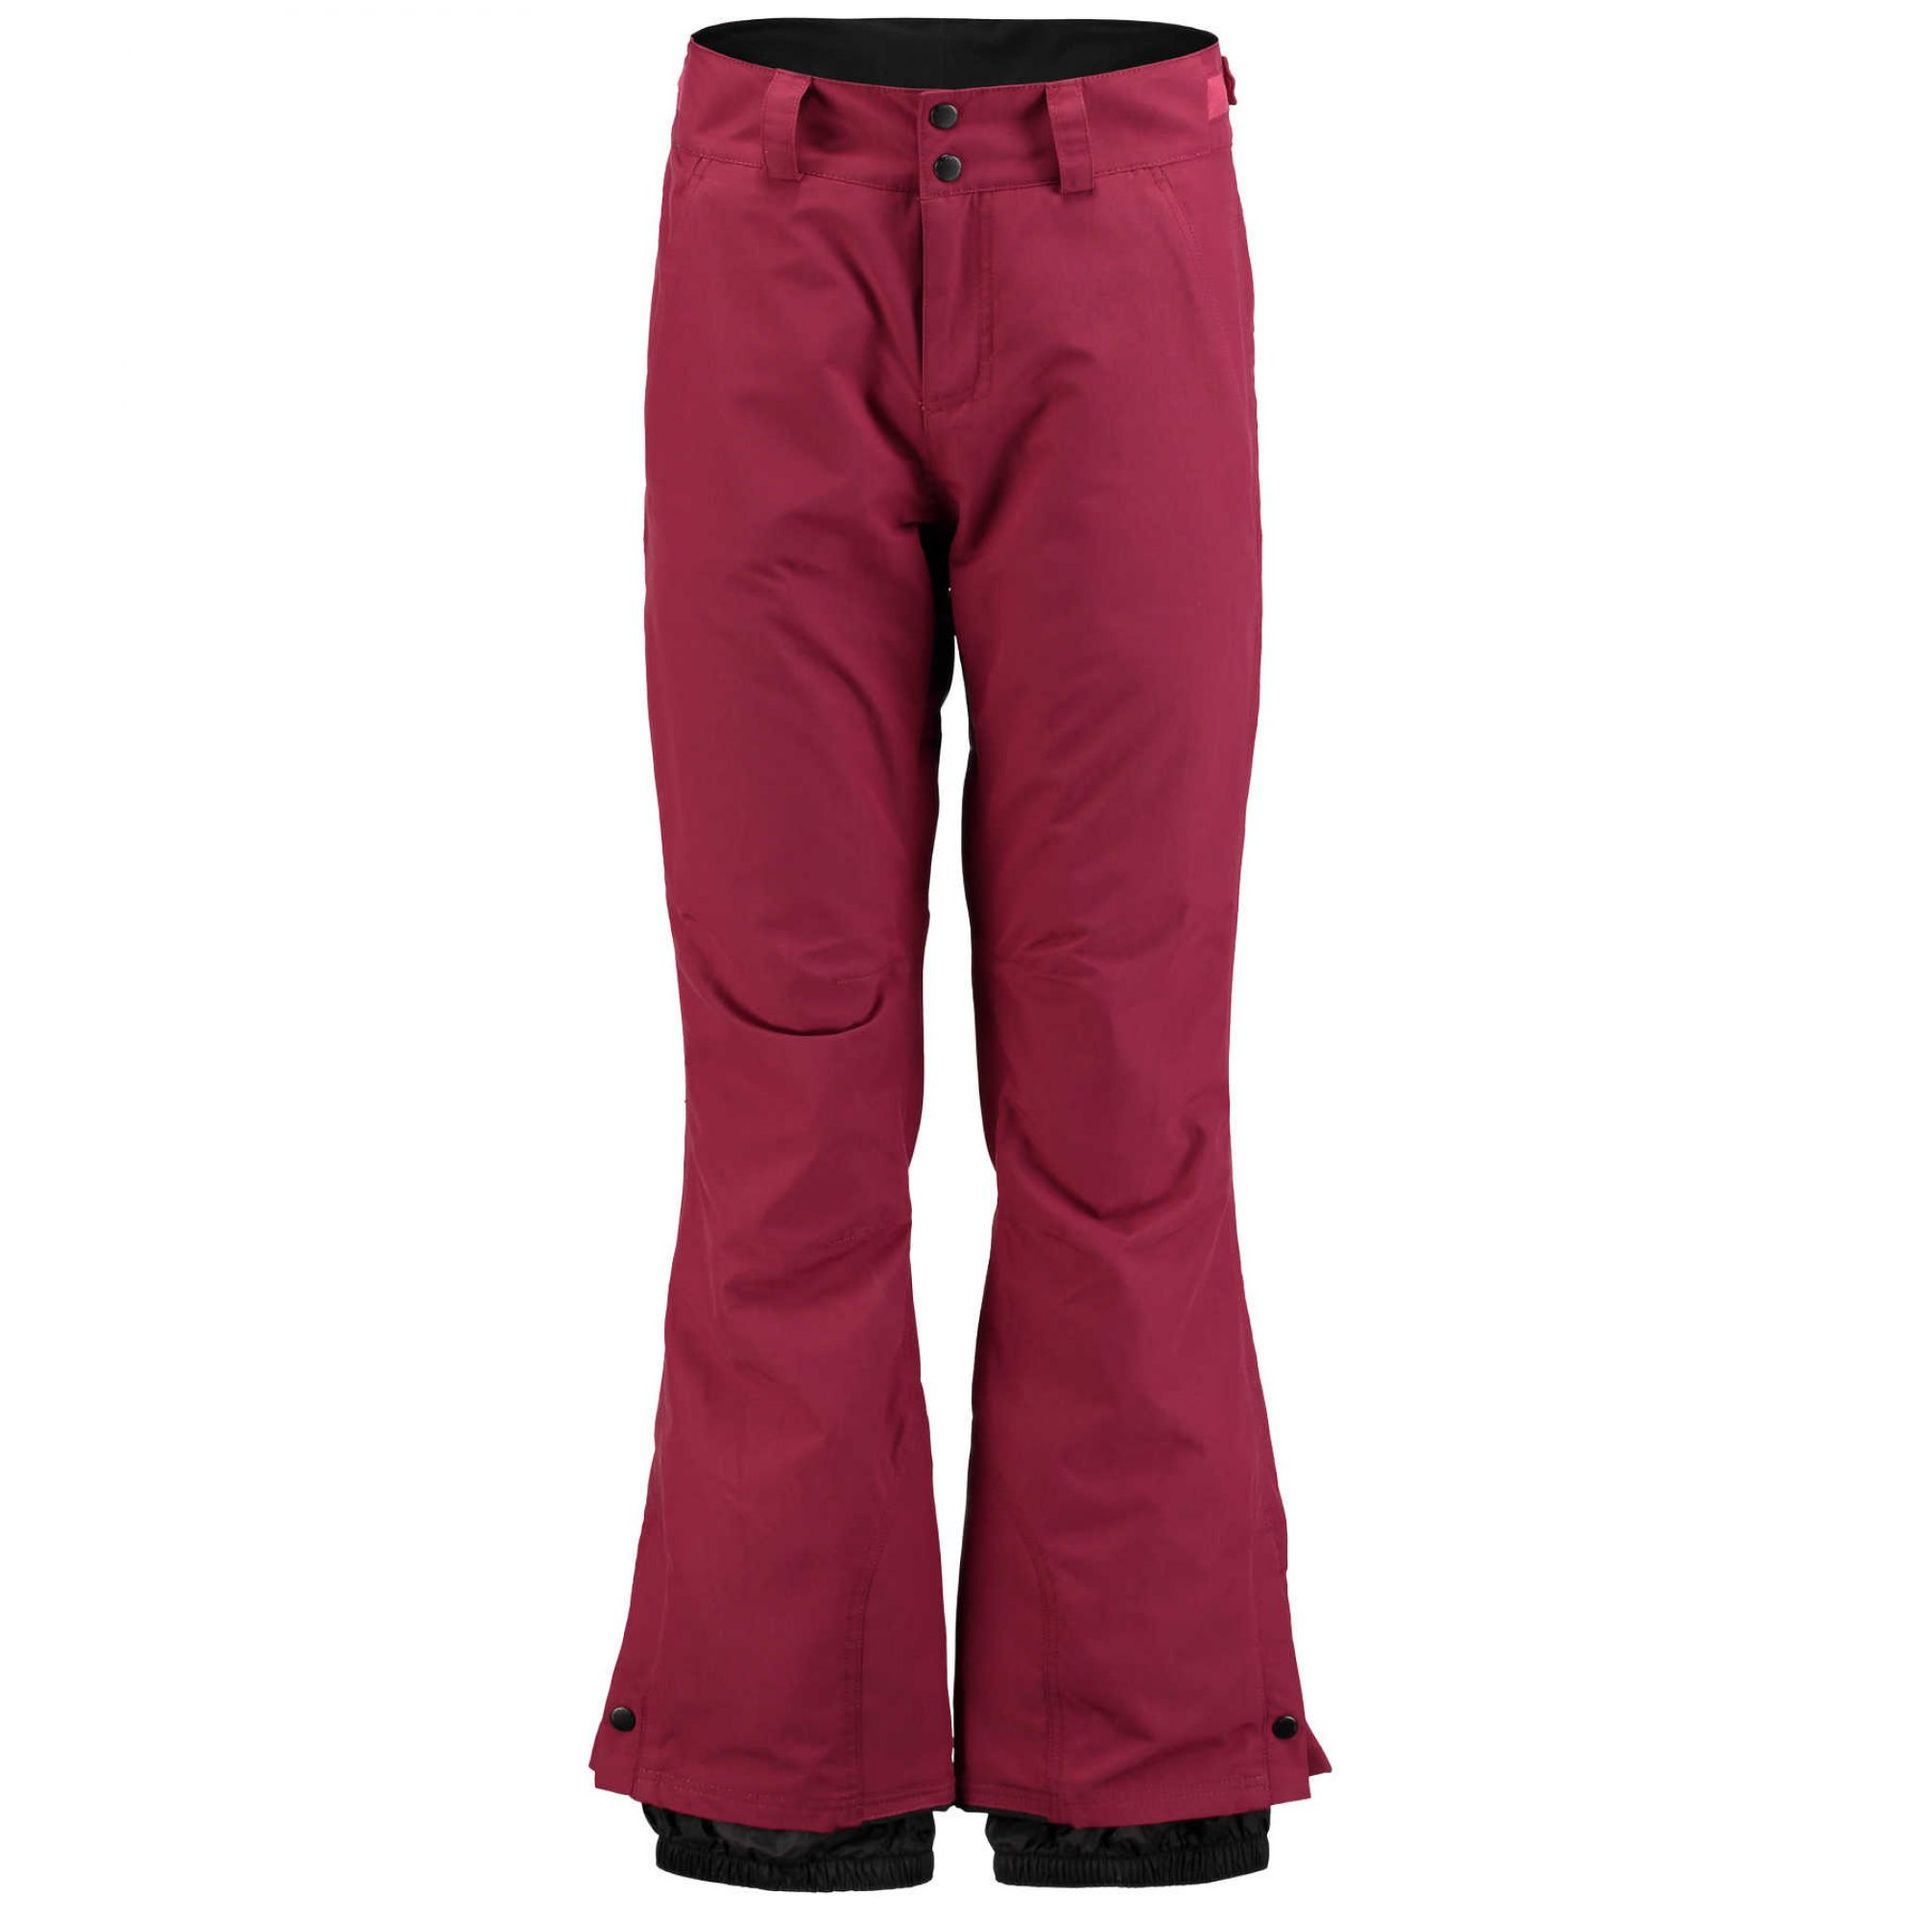 SPODNIE ONEILL GLAMOUR PANT  PASSION RED